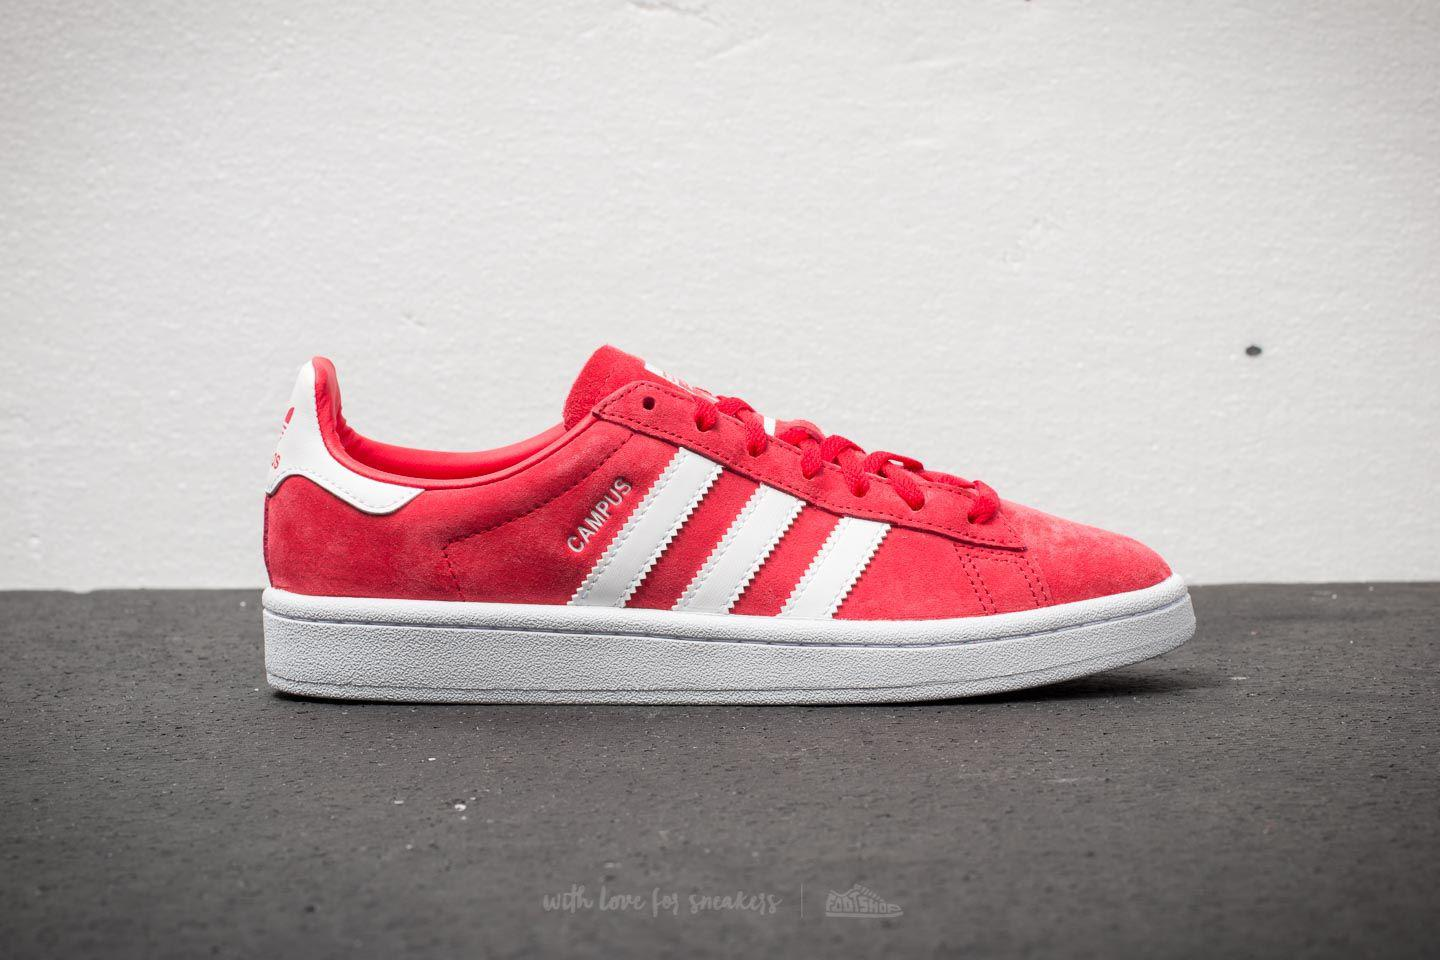 adidas campus vs gazelle adidas Shoes & Sneakers On Sale